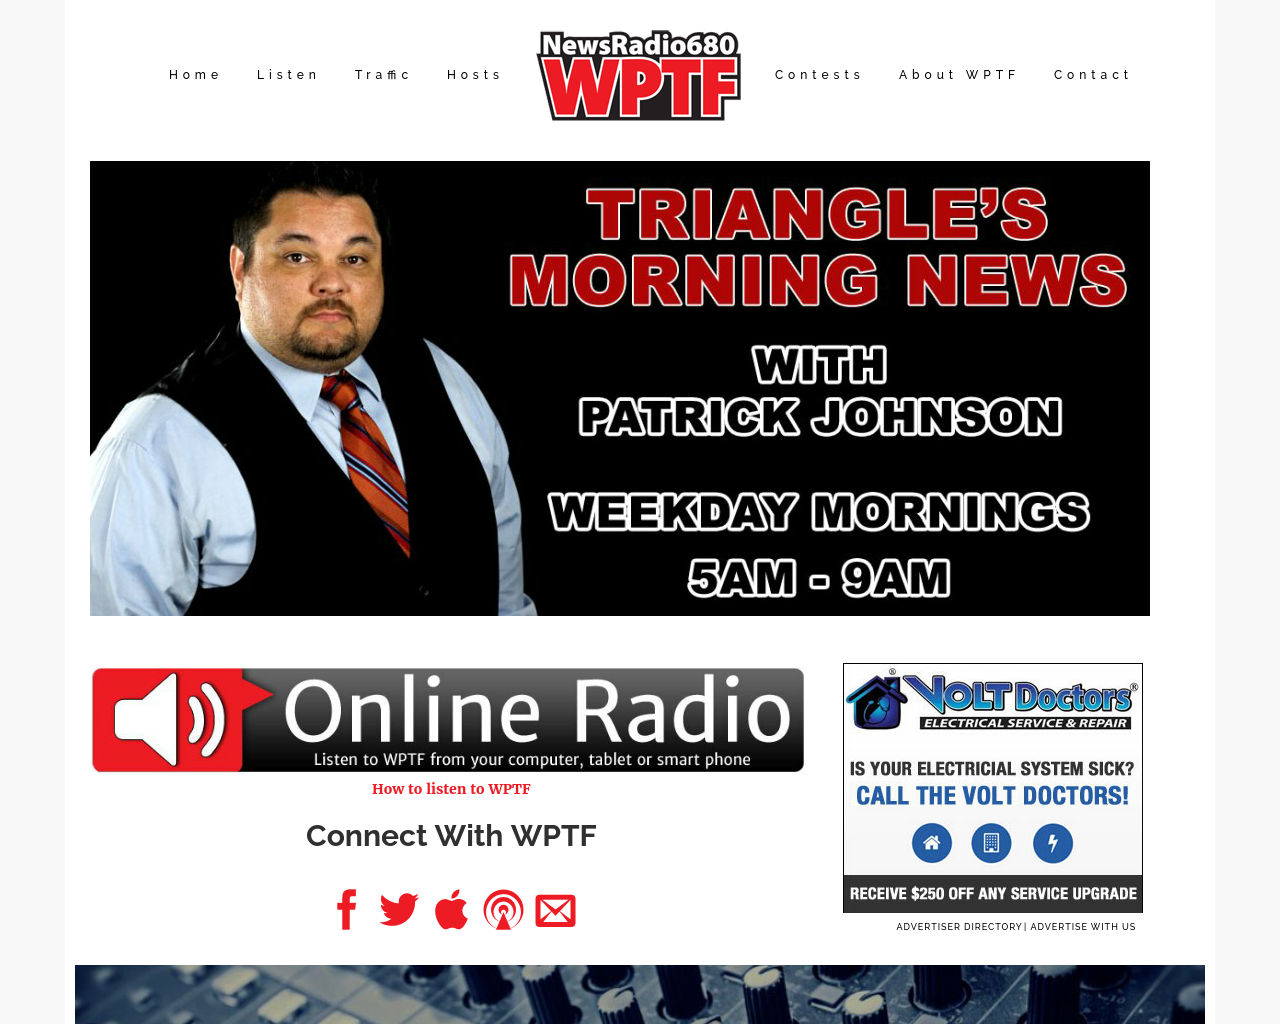 NewsRadio-680-WPTF-Advertising-Reviews-Pricing